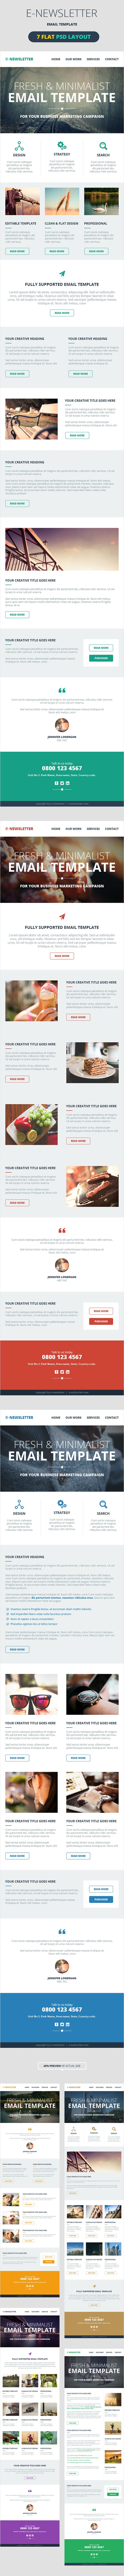 A set of 7 psds for Flat designed Email Templates which can be use for any kind of business like Travel, Corporate, E-commerce, Retail, Photographer, Artist, Designer & Freelancer. Design is clean and professional. Layers are well organized, you can easil…